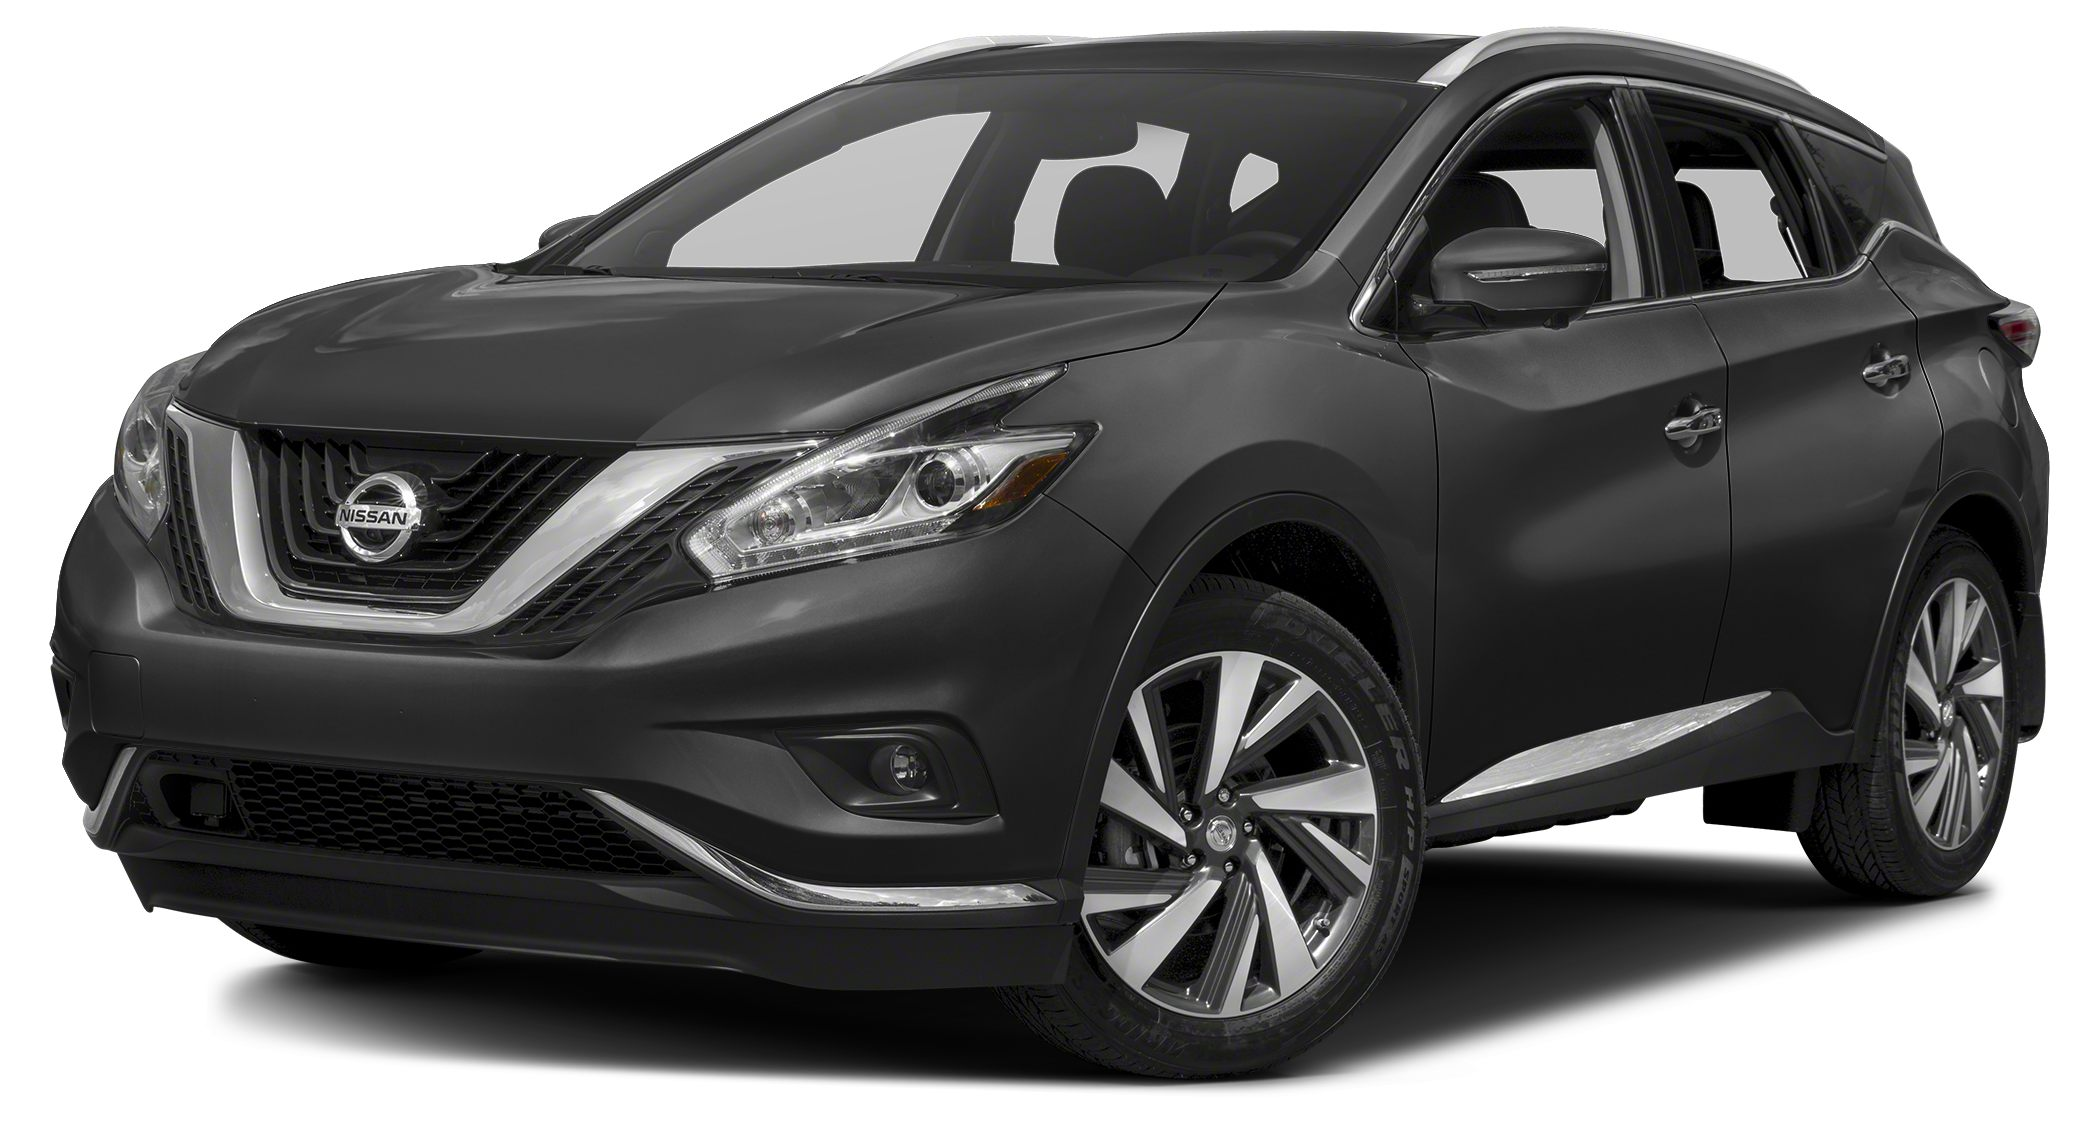 2017 Nissan Murano SL New Arrival This Nissan Murano is Certified Preowned CARFAX 1-Owner Price